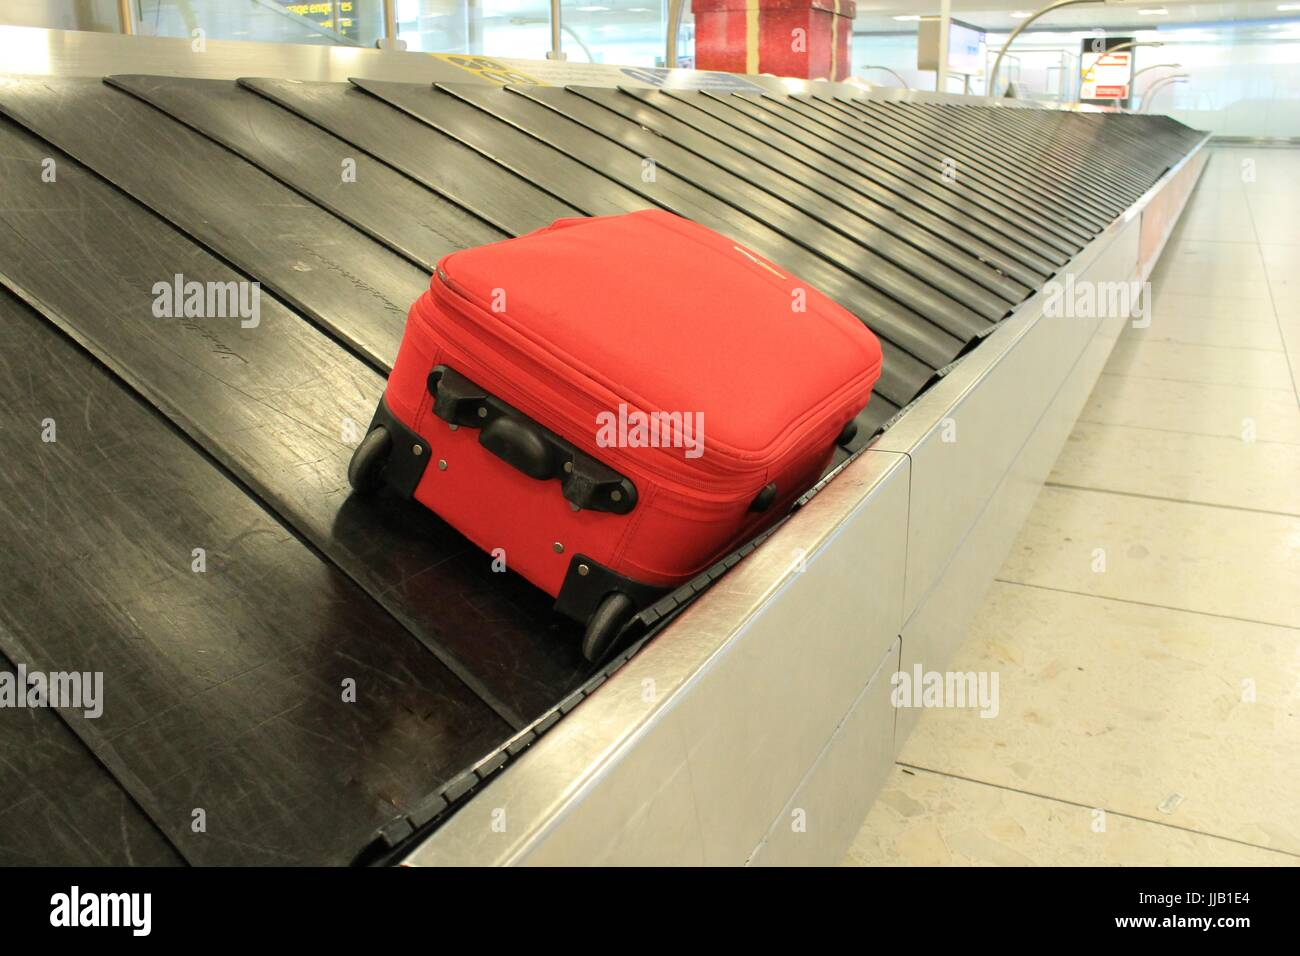 Airport Luggage Carousel Stock Photos Amp Airport Luggage